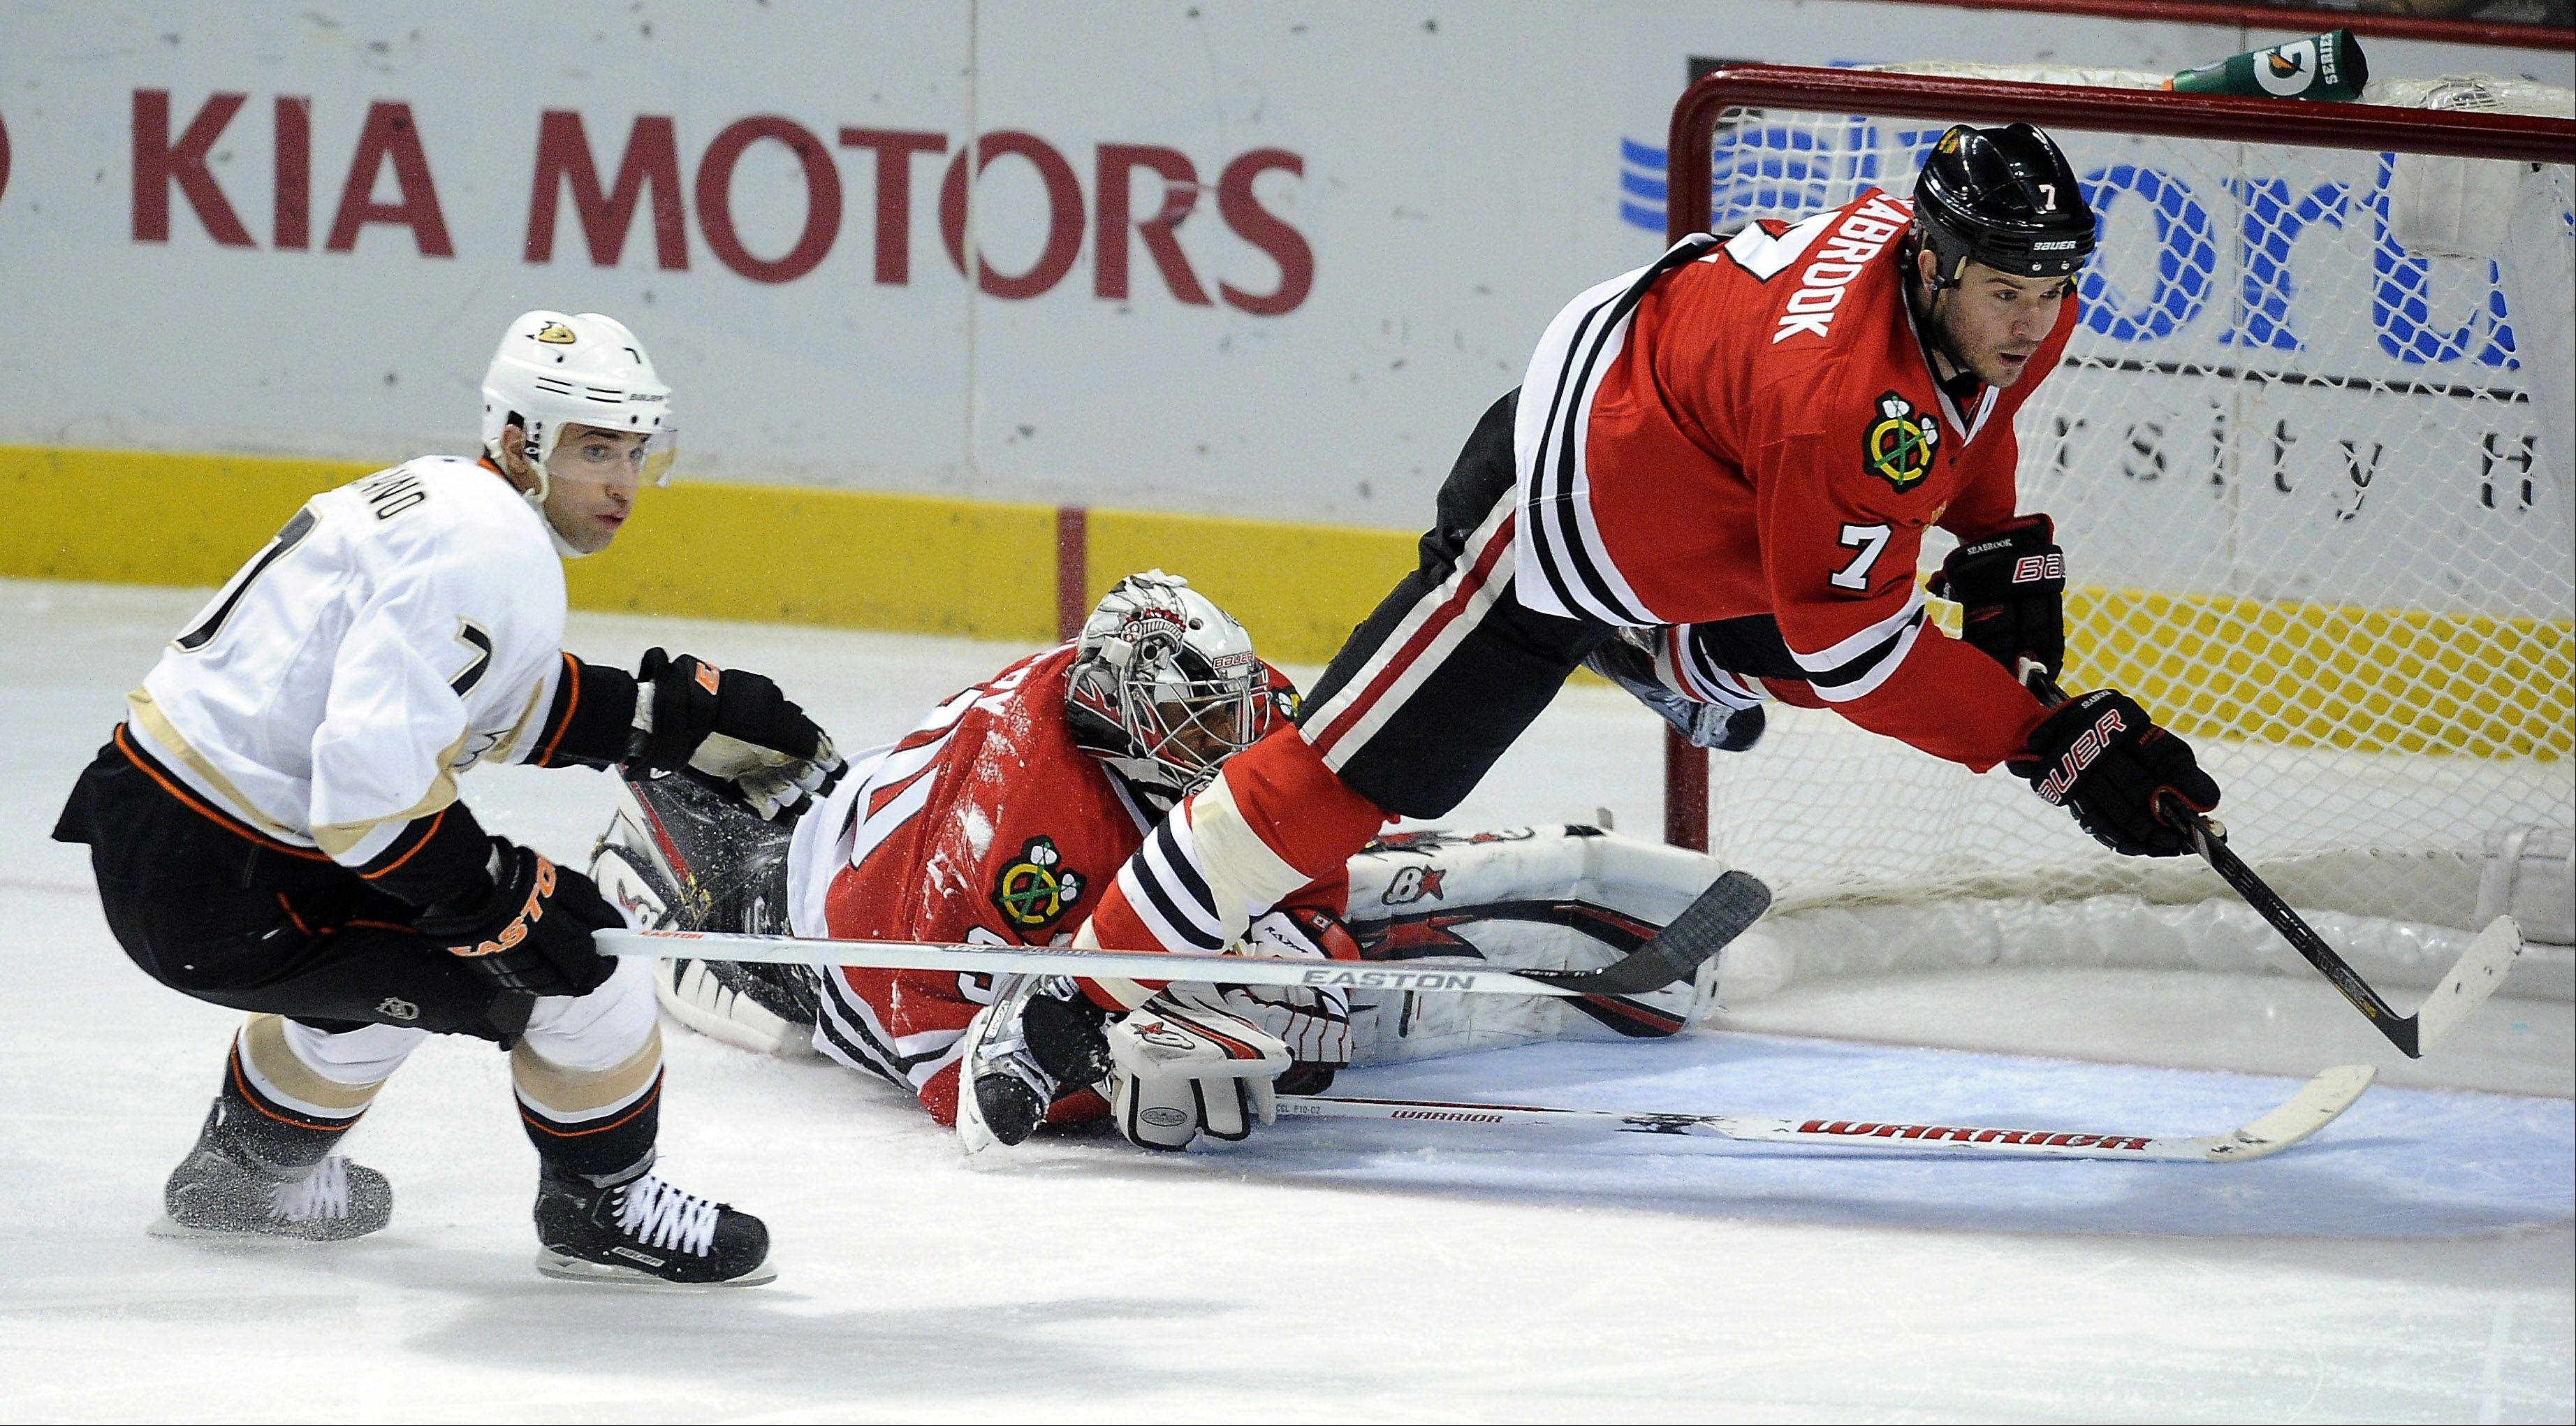 Mark Welsh/mwelsh@dailyherald.com Blackhawks Brent Seabrook gets tripped up in the second period as he tries for a loose puck at the United Center in Chicago on Friday.